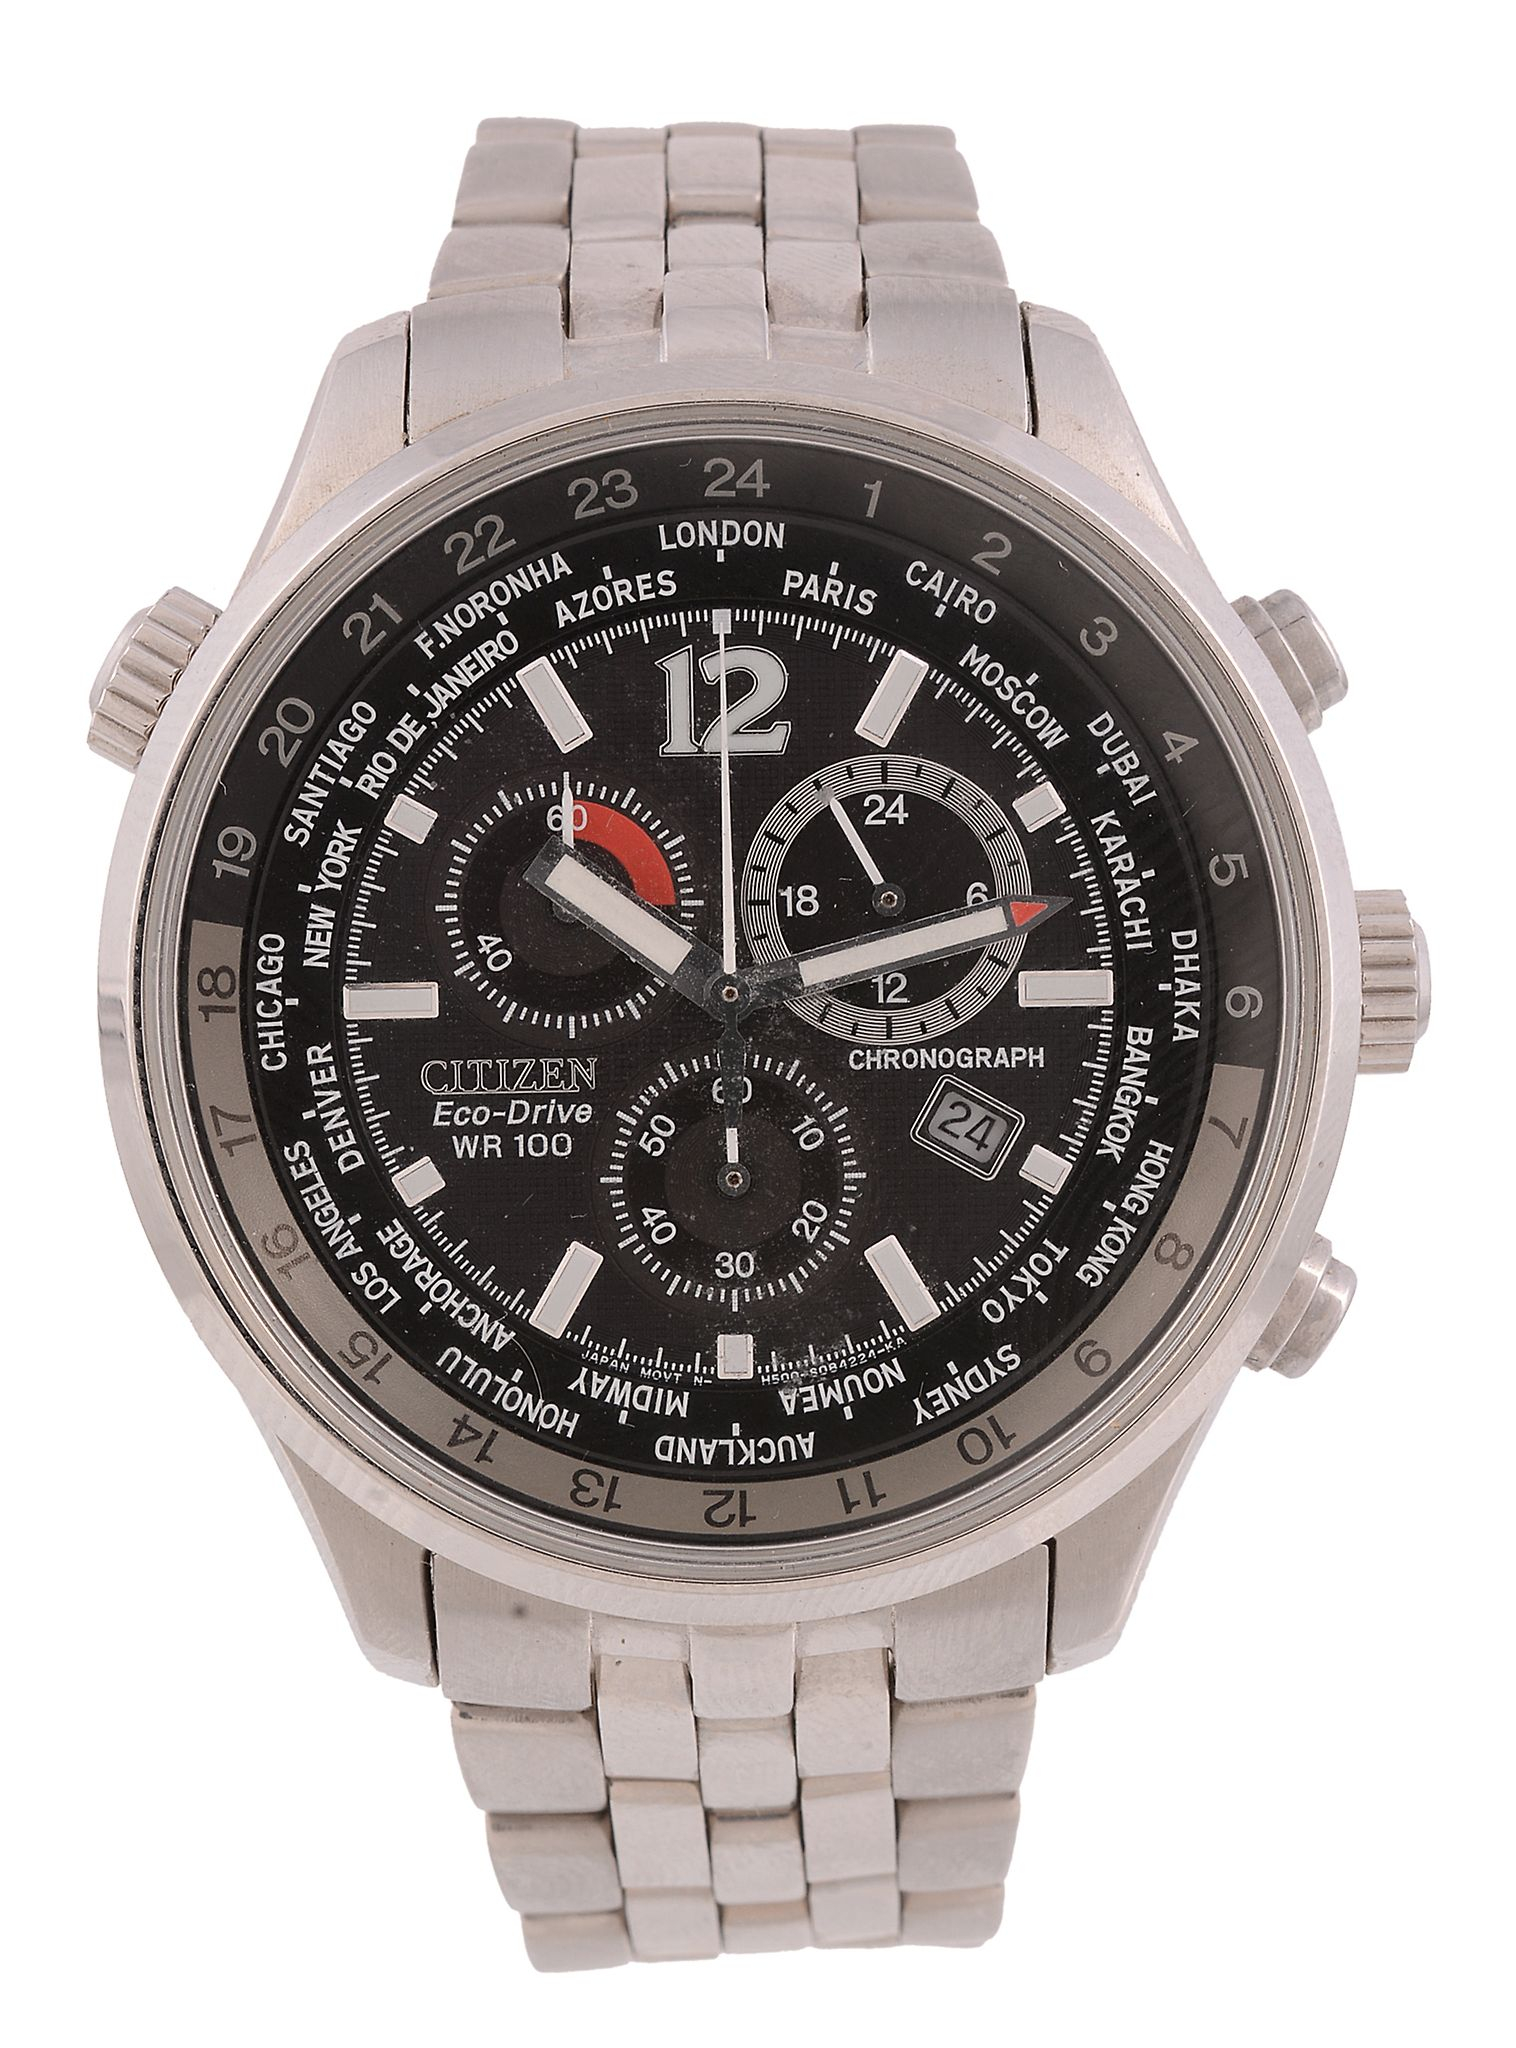 Citizen, Eco Drive Wr100, Ref. H500 – S055148 Hst, A For Citizen Wr100 Chronograph Manual